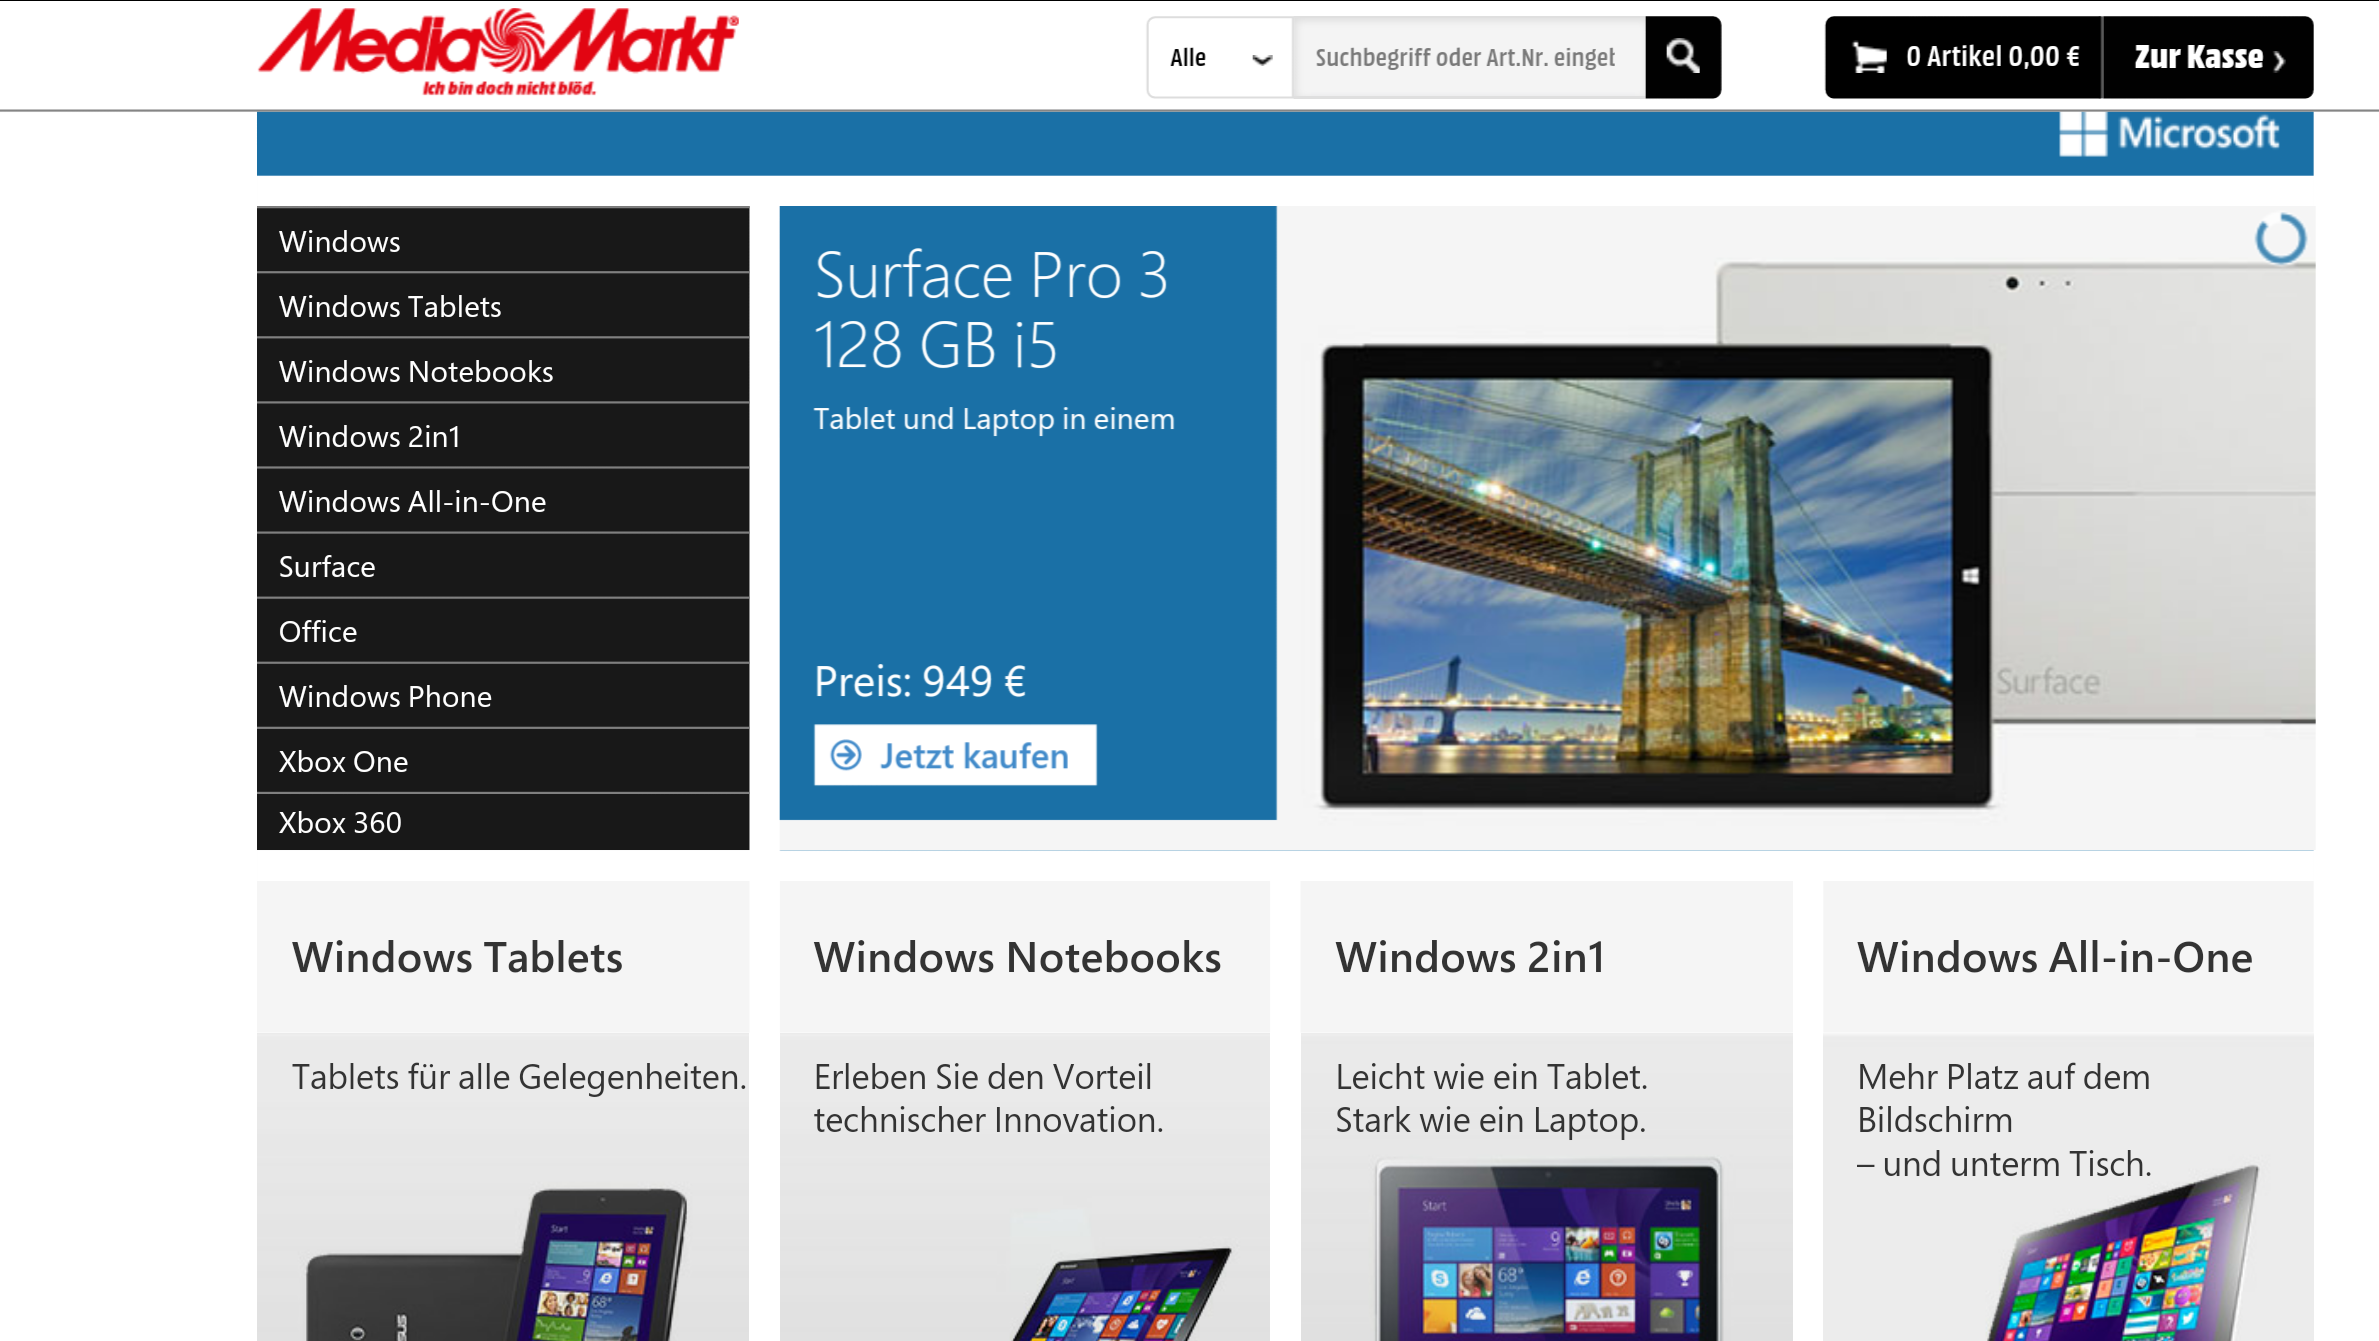 media markt online nun mit separatem microsoft shop. Black Bedroom Furniture Sets. Home Design Ideas